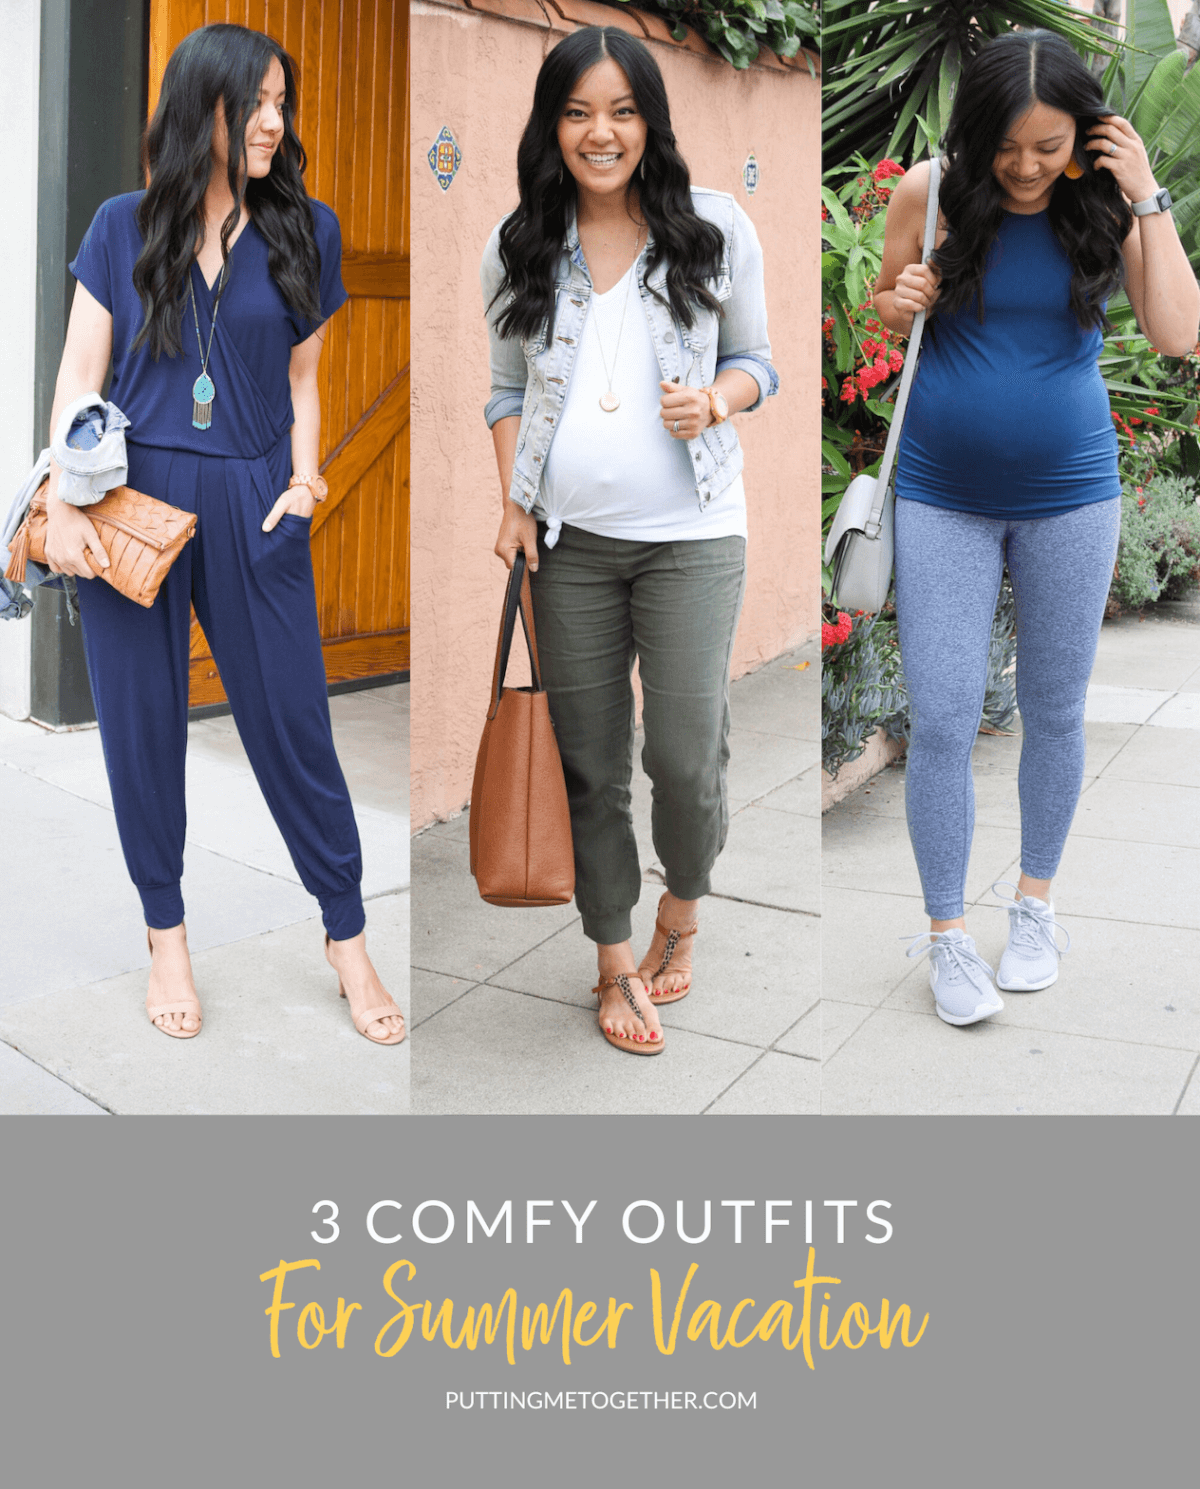 3 Comfy Outfits for Summer Vacation